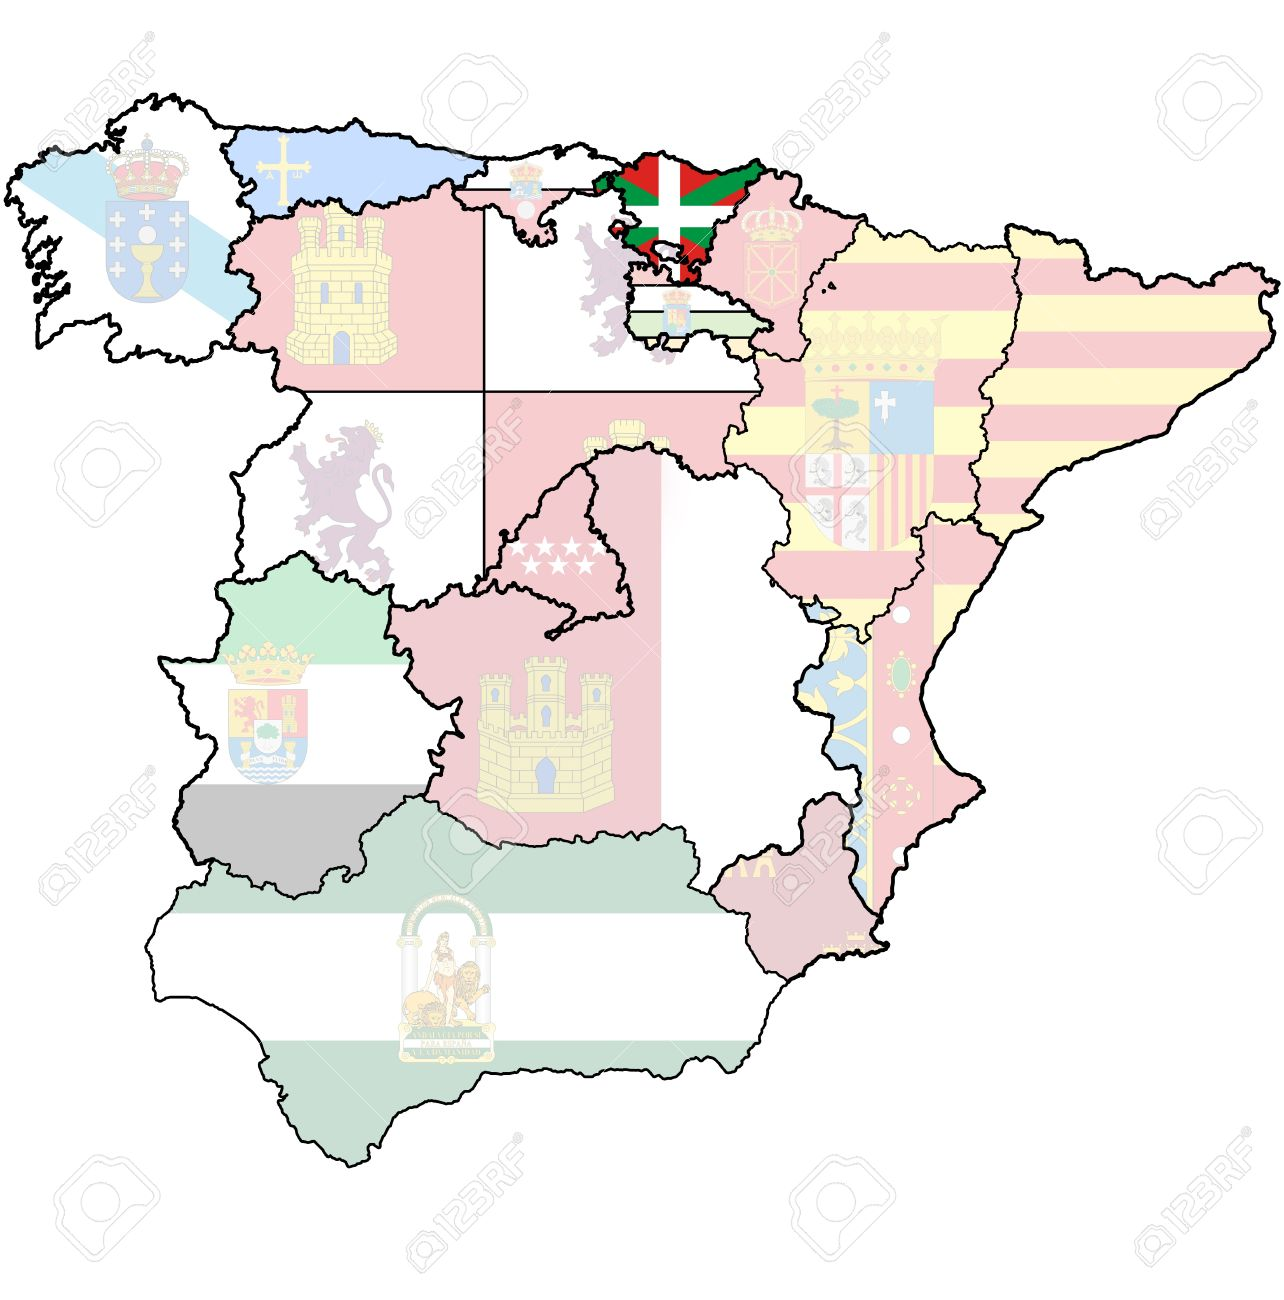 Basque Country Region On Administration Map Of Regions Of Spain - Basque centers us map